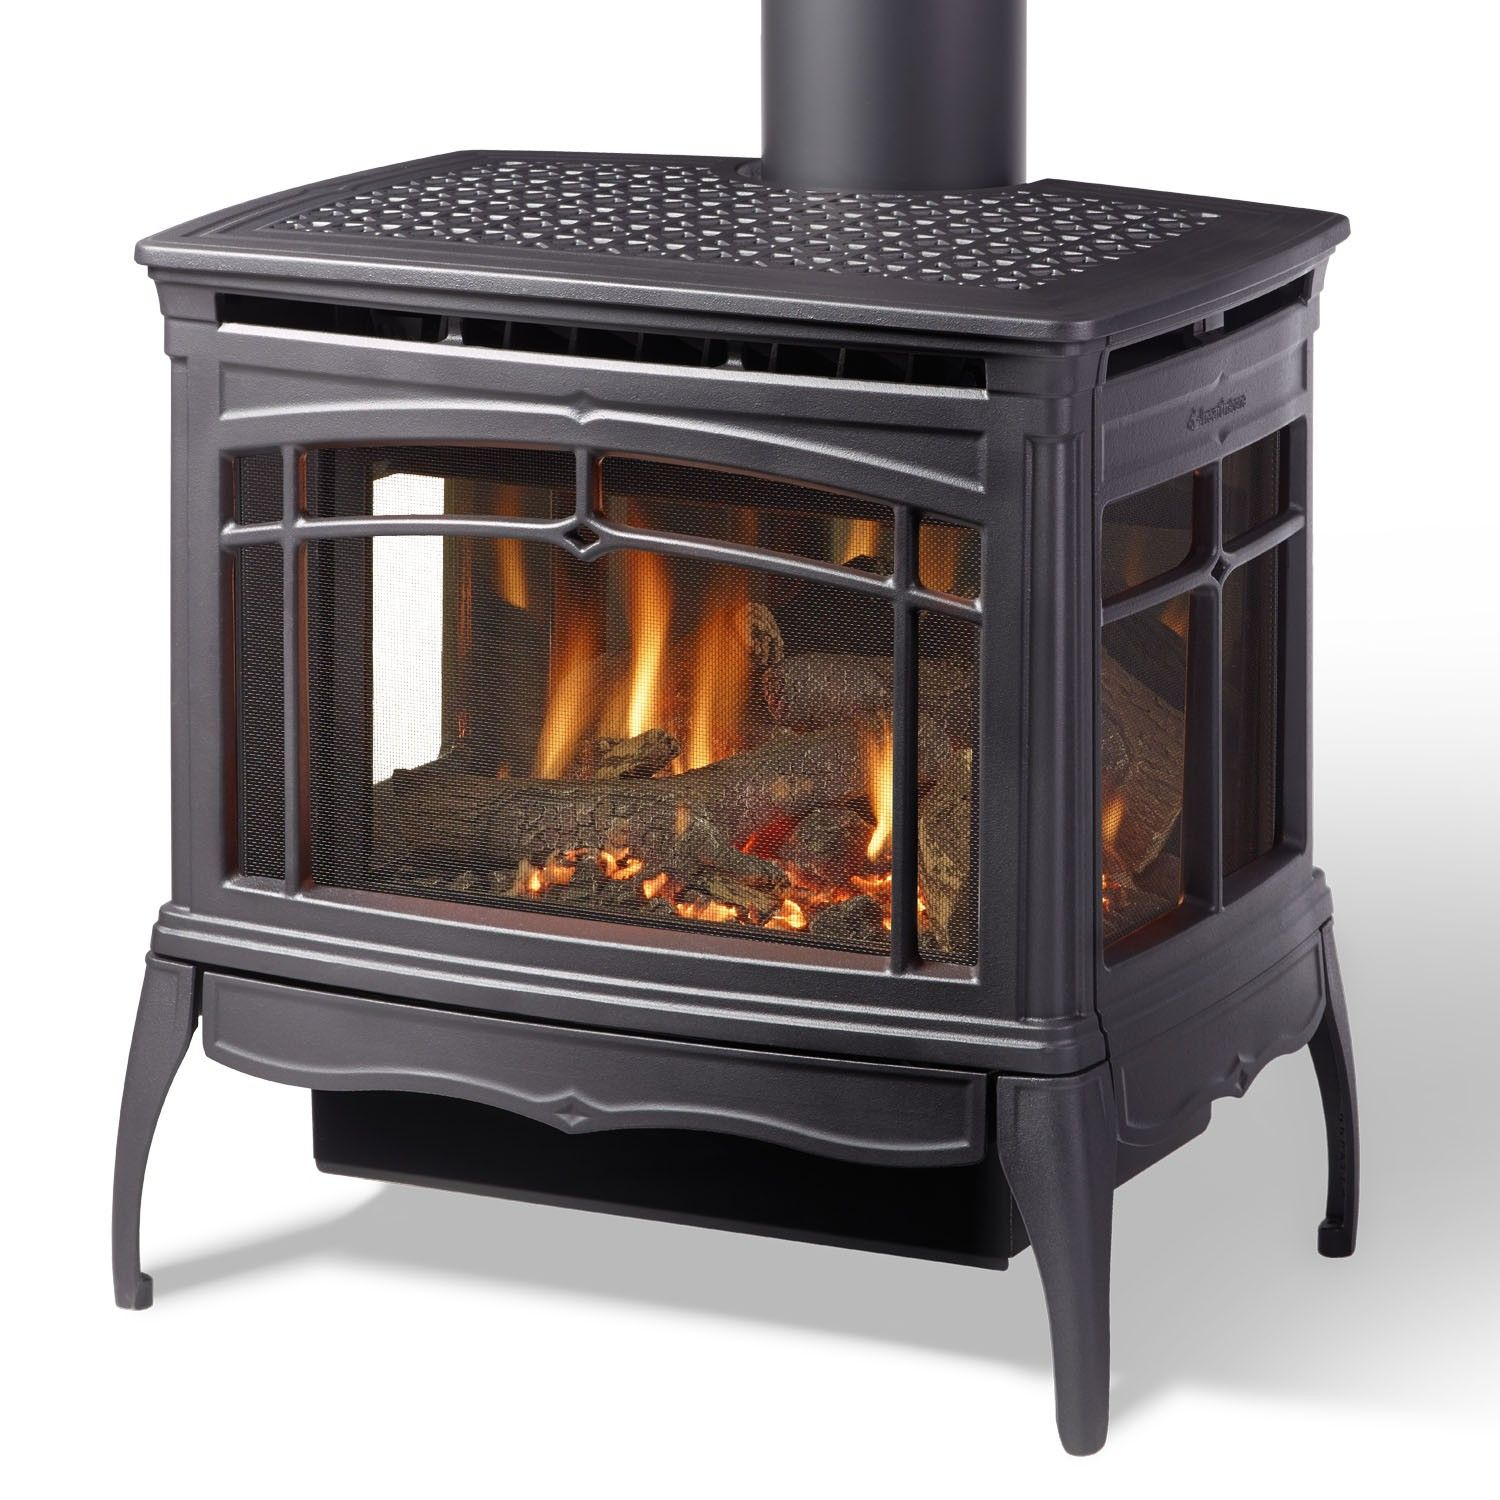 Freestanding Gas Fireplaces Gas Stove Gas Fireplace Wood Stove